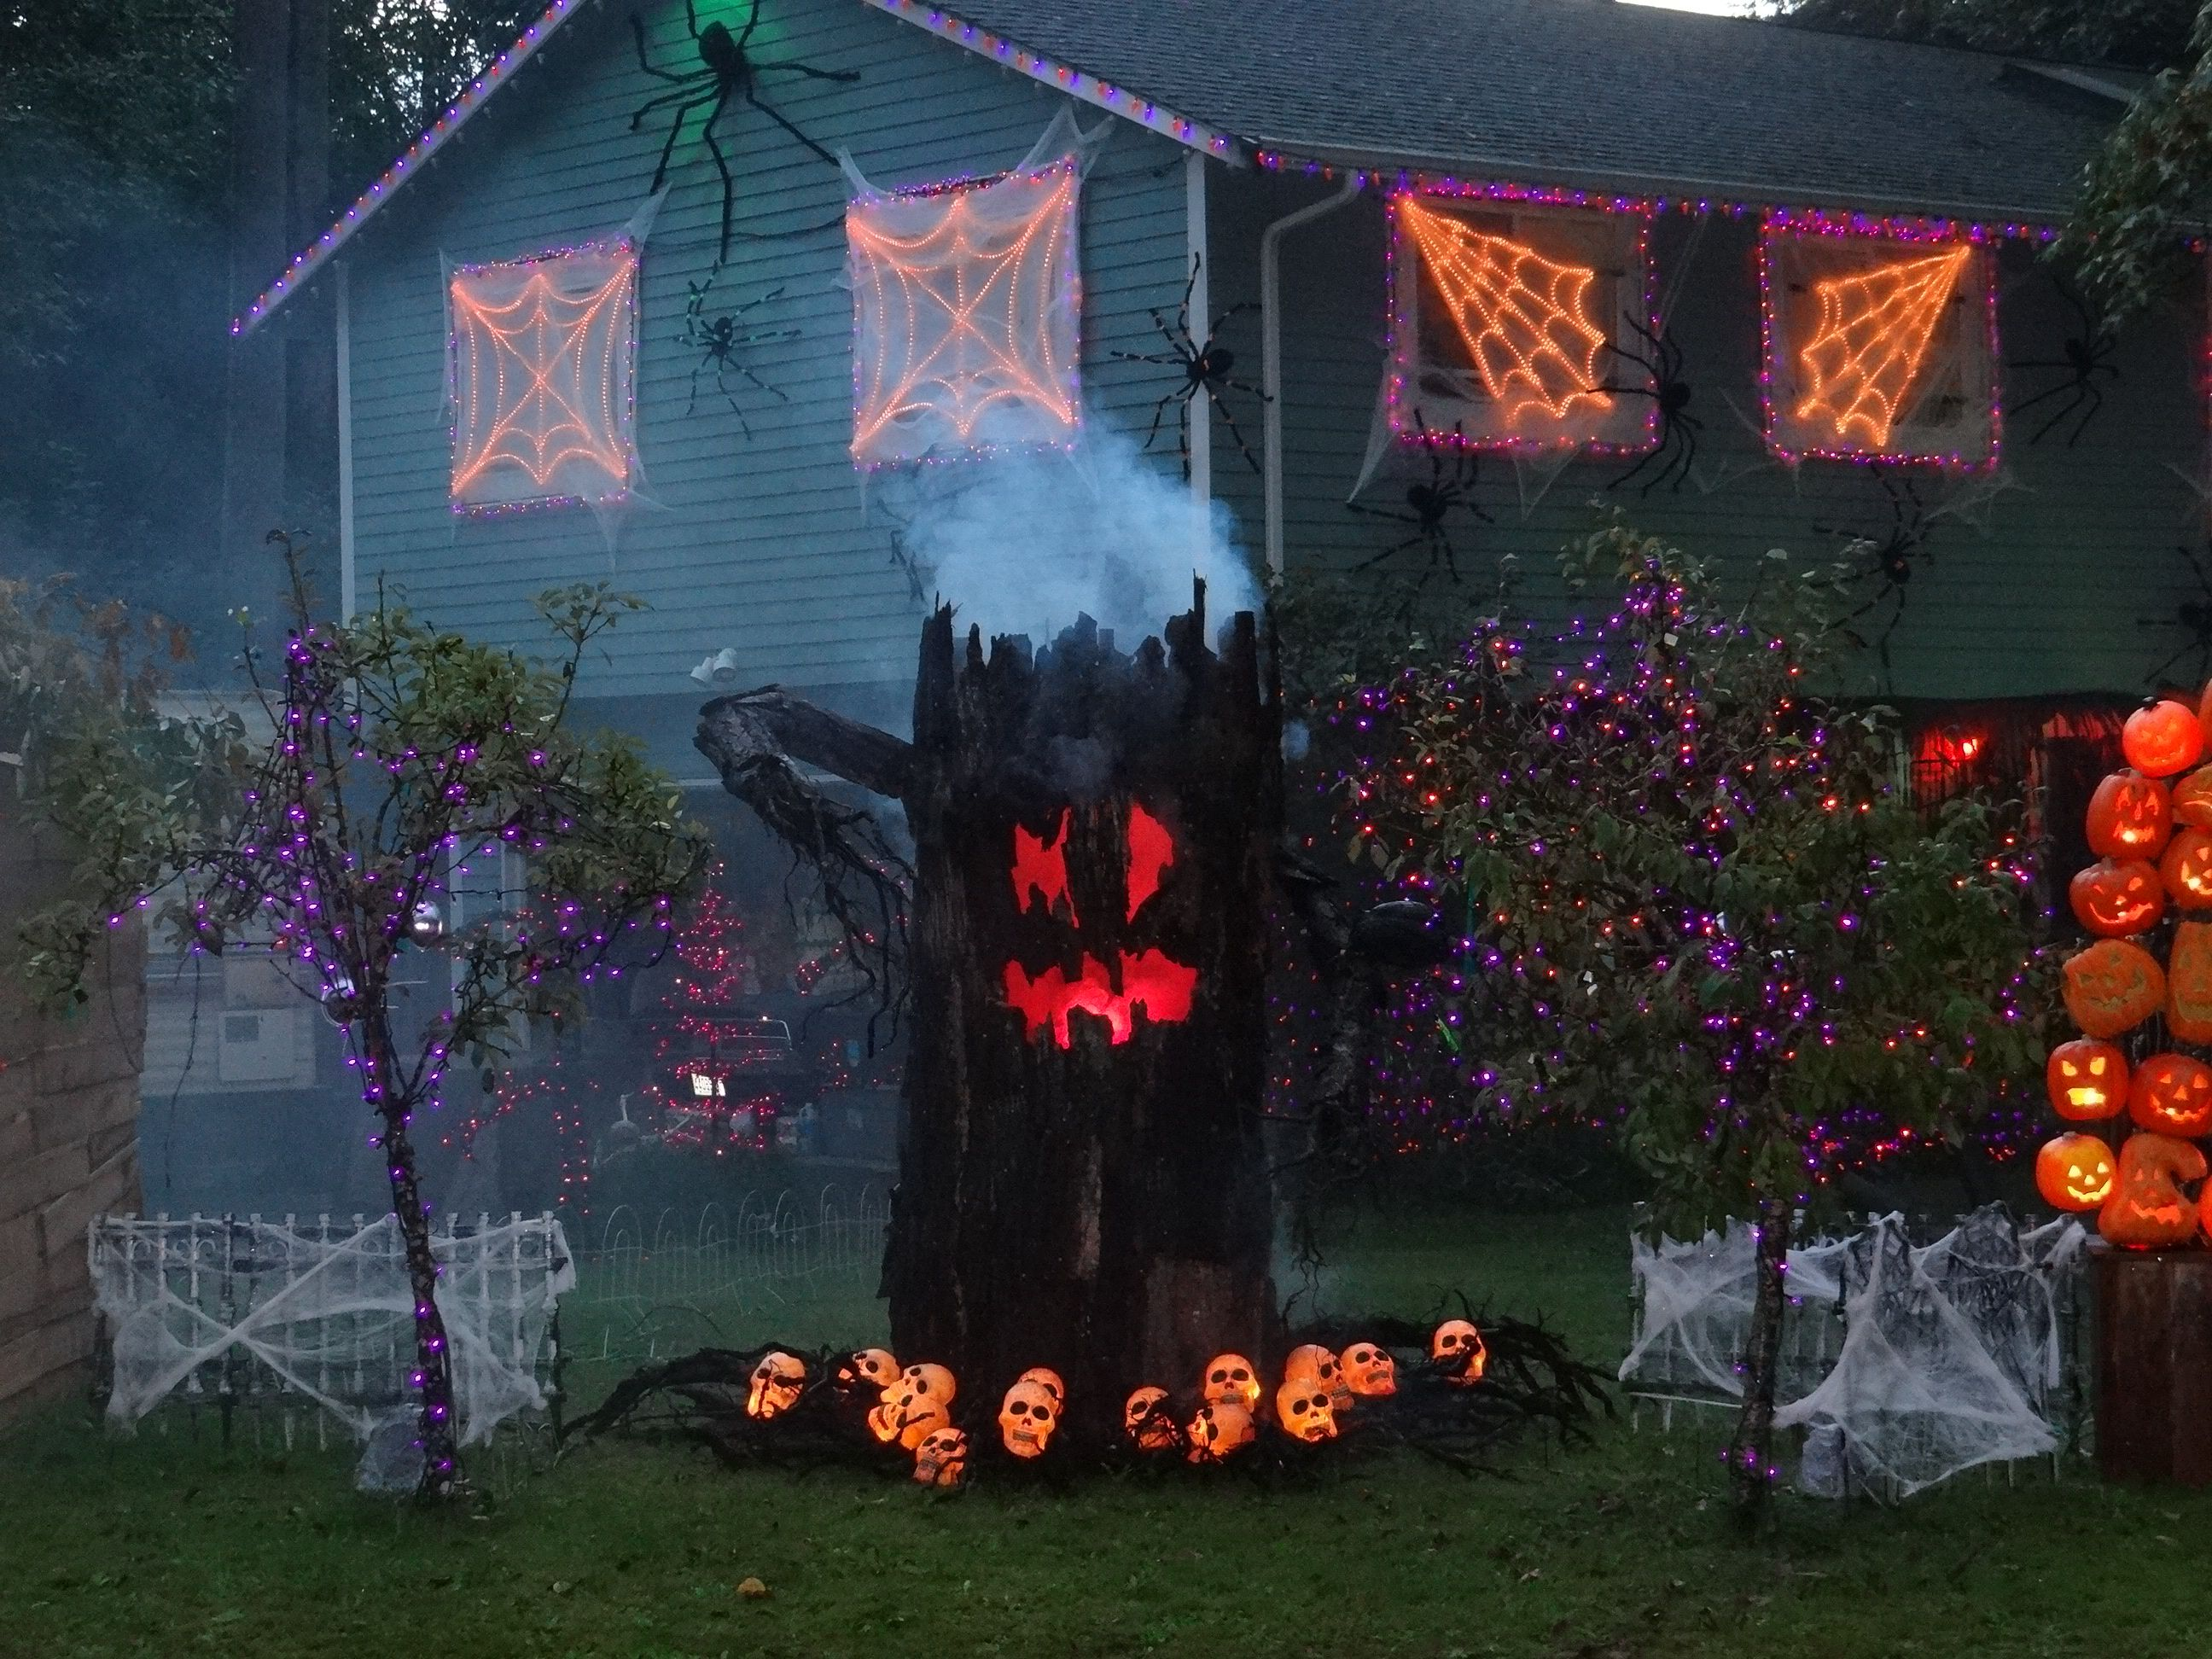 decoration cool decorating halloween outdoor with scary black tree and spyder also pumpkins for halloween outdoor design ideas wonderful halloween outdoor - Scary Halloween Decorating Ideas